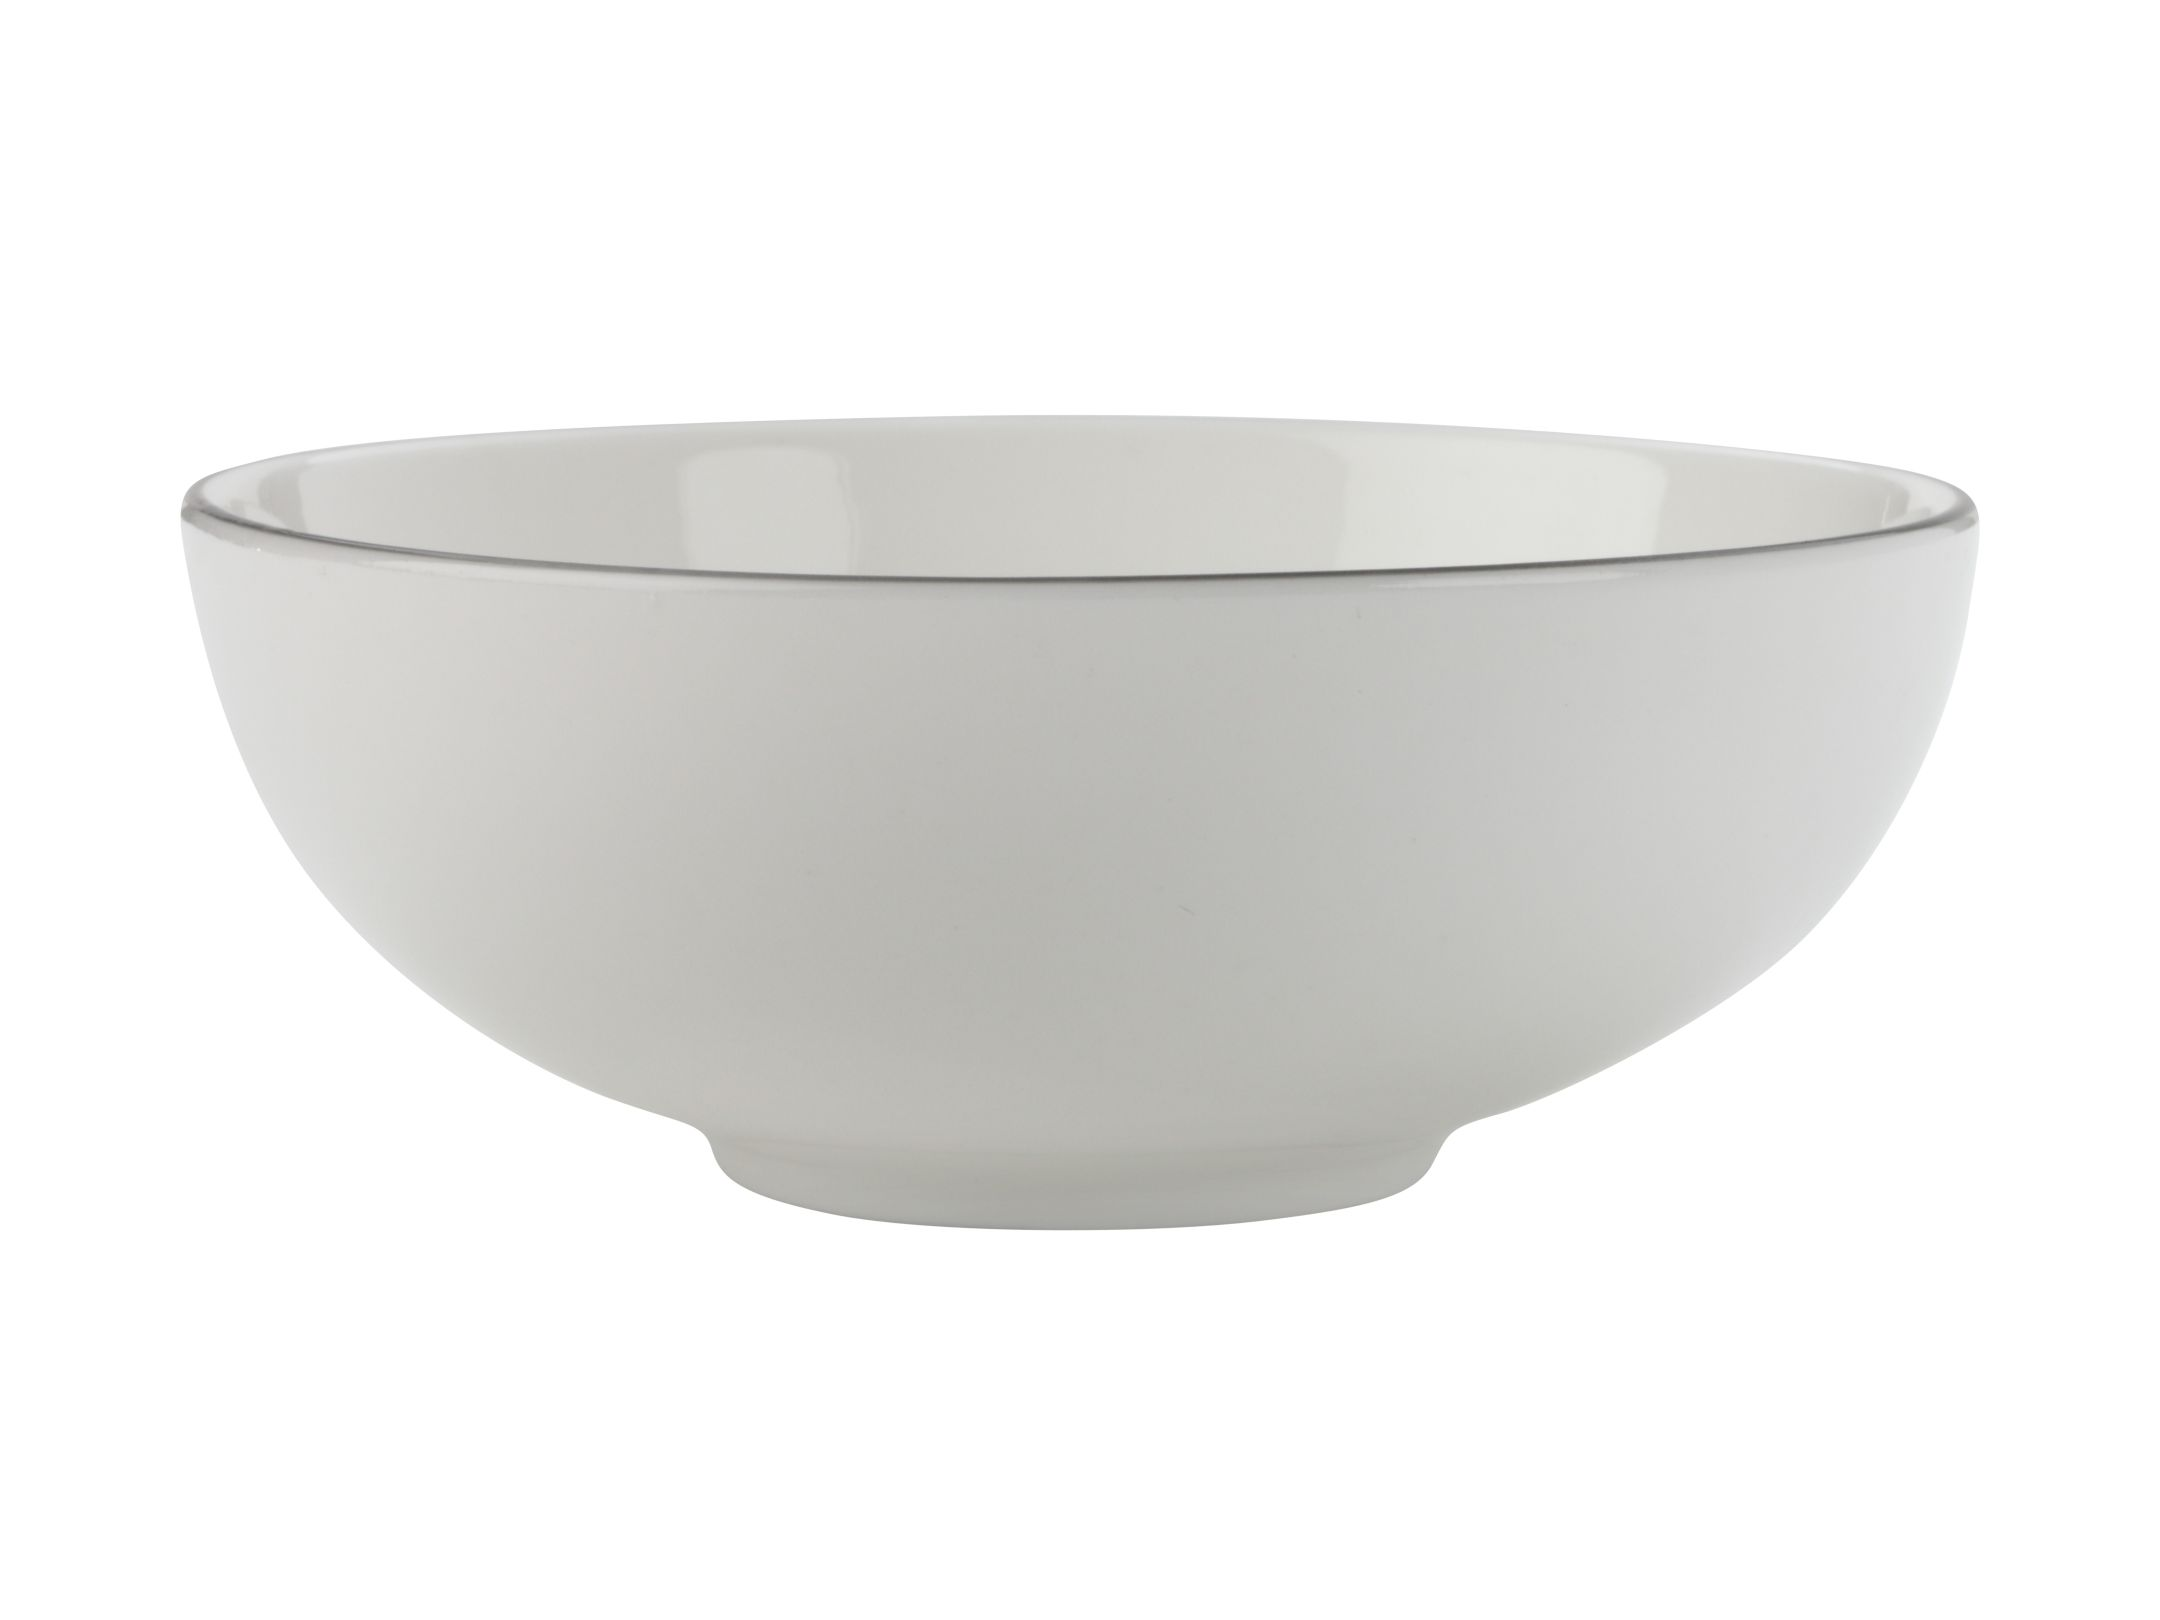 Porcelánová miska White Basics EDGE 16 cm - Maxwell&Williams